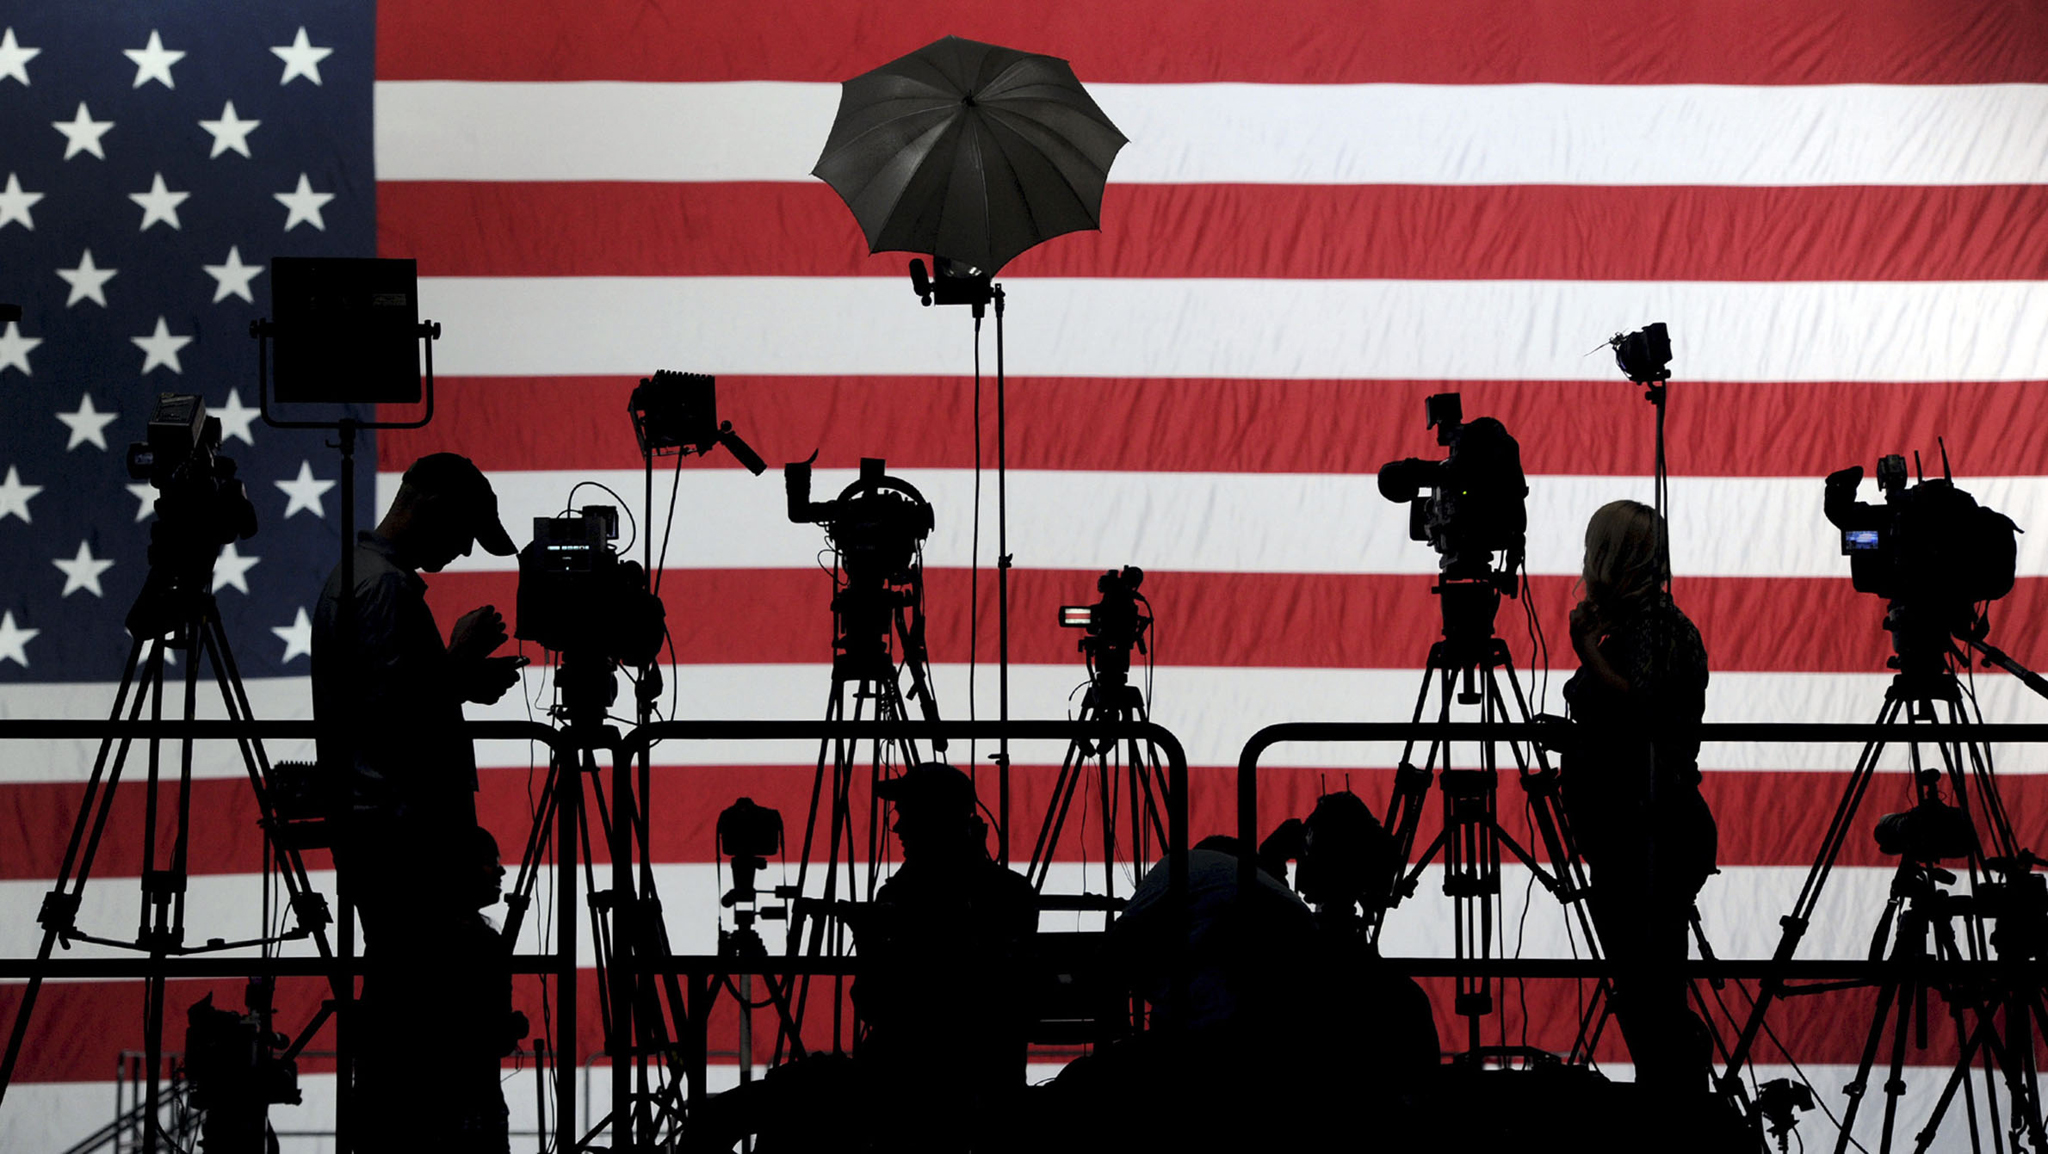 Election...The media sets up on the risers before Democrat Tom Wolf's rally in the Utz Arena of the York Expo Center in York, Pa. on Tuesday, Nov. 4, 2014. (AP Photo/York Daily Record, Jason Plotkin)